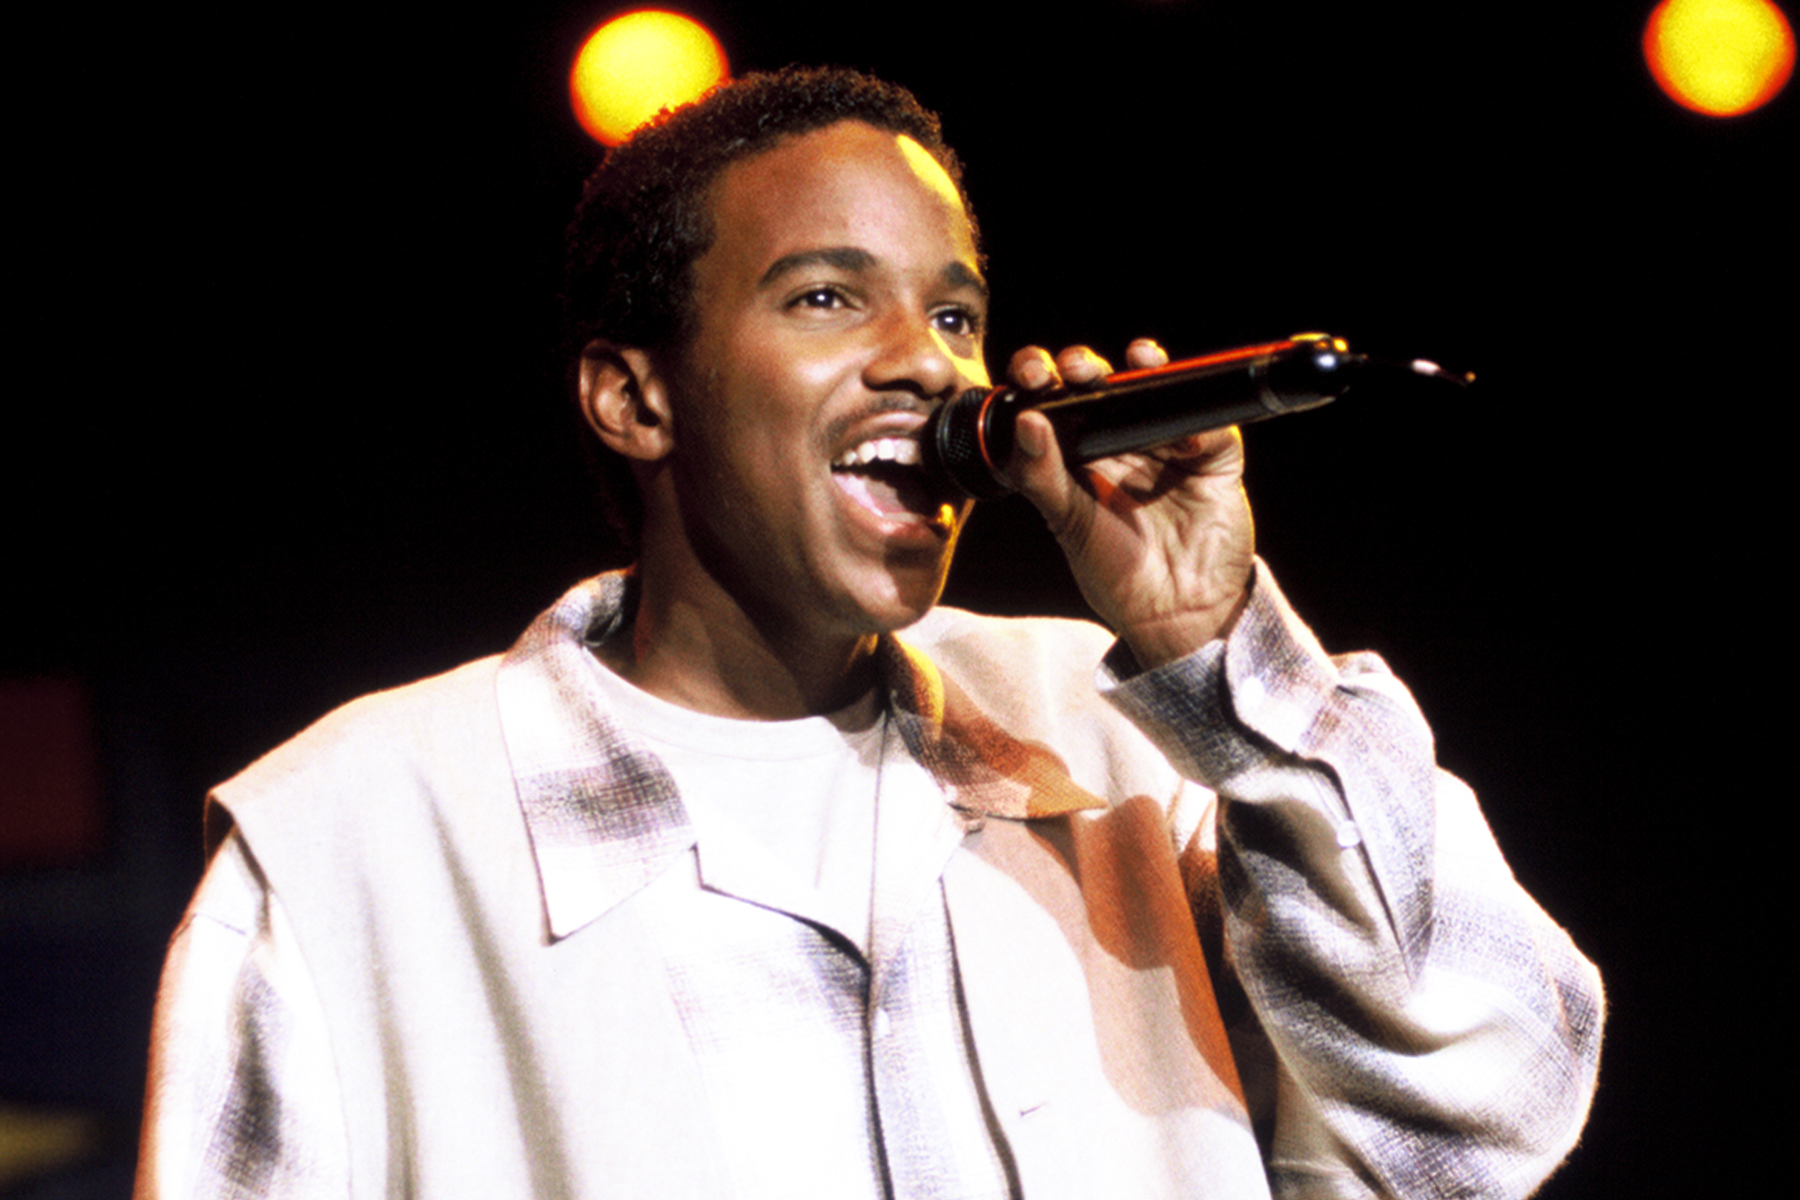 A Teenage Tevin Campbell Didn't Feel Ready to Sing Prince's Songs. Now, He's Glad He Did